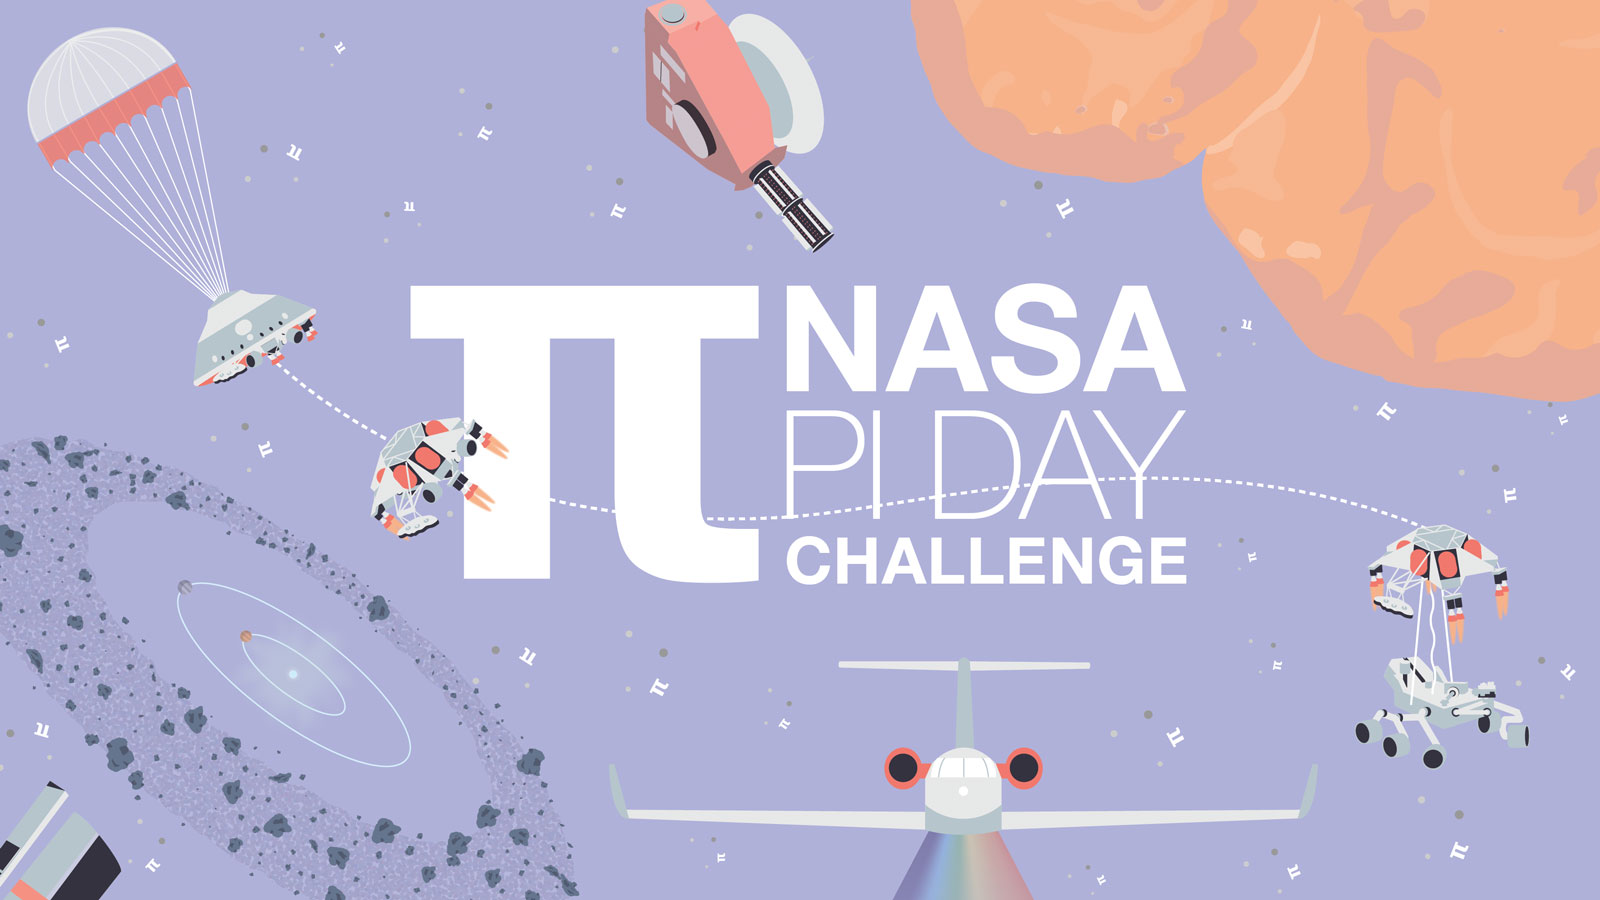 Whimsical space graphic says NASA Pi Day Challenge